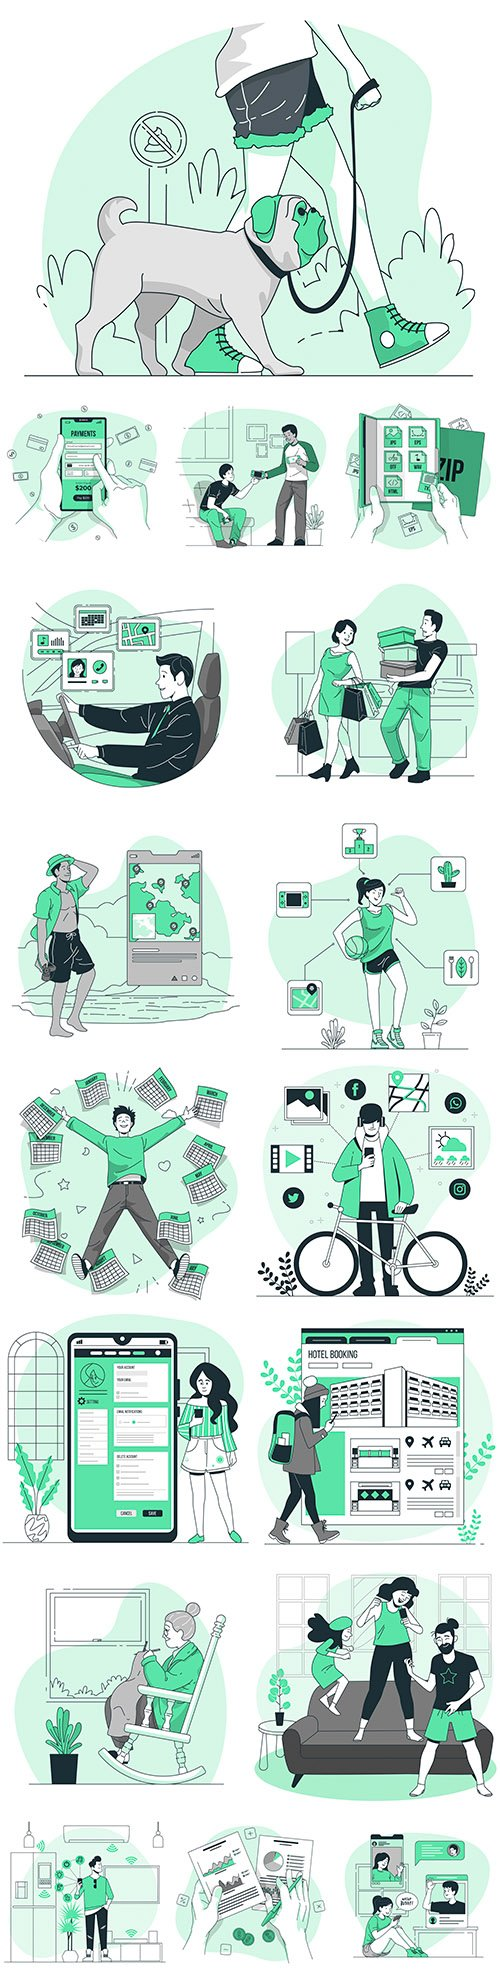 People in different situations and lifestyle flat design